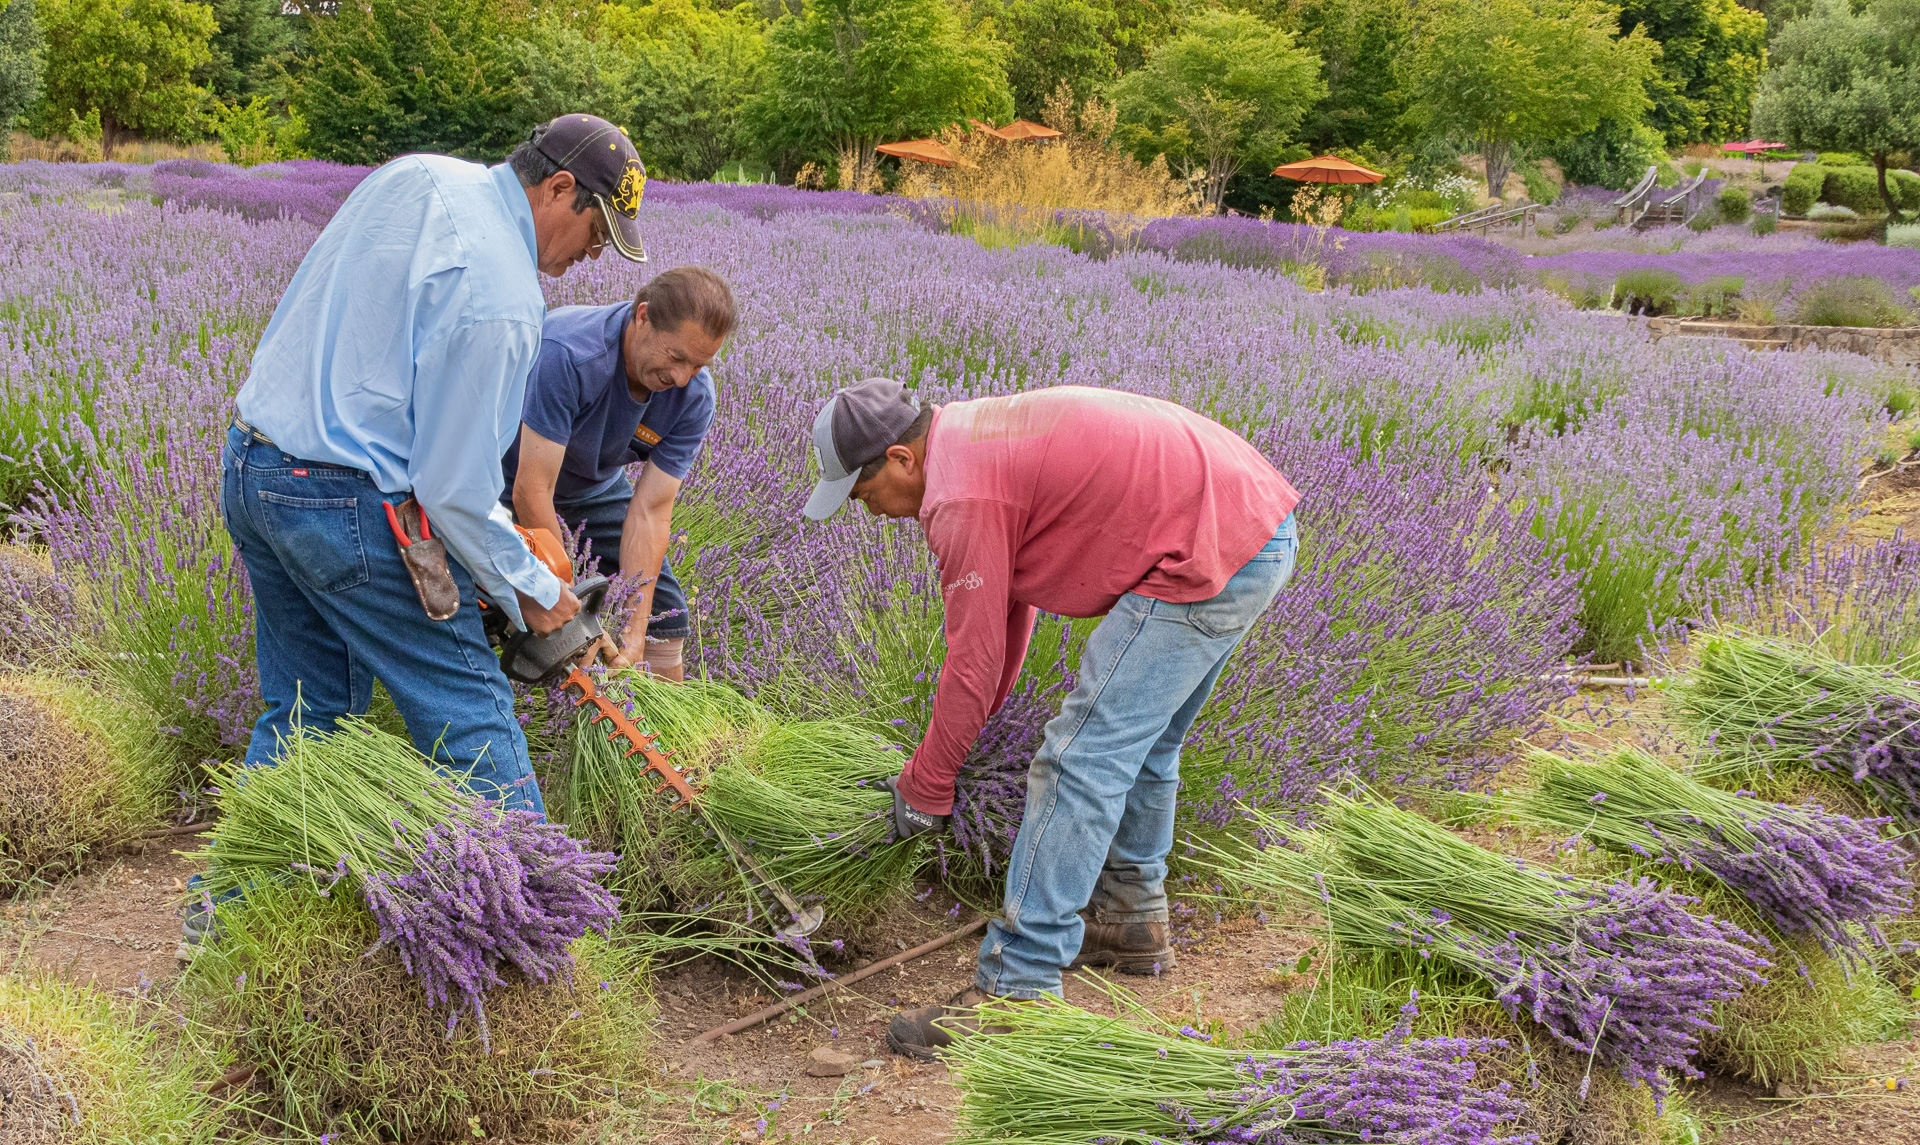 Lavender-1-Lavender-harvest-is-accomplished-with-3-people.-Two-divide-each-plant-and-the-third-person-cuts-it-JI-1-Place-by-Betsy-Waters-SR